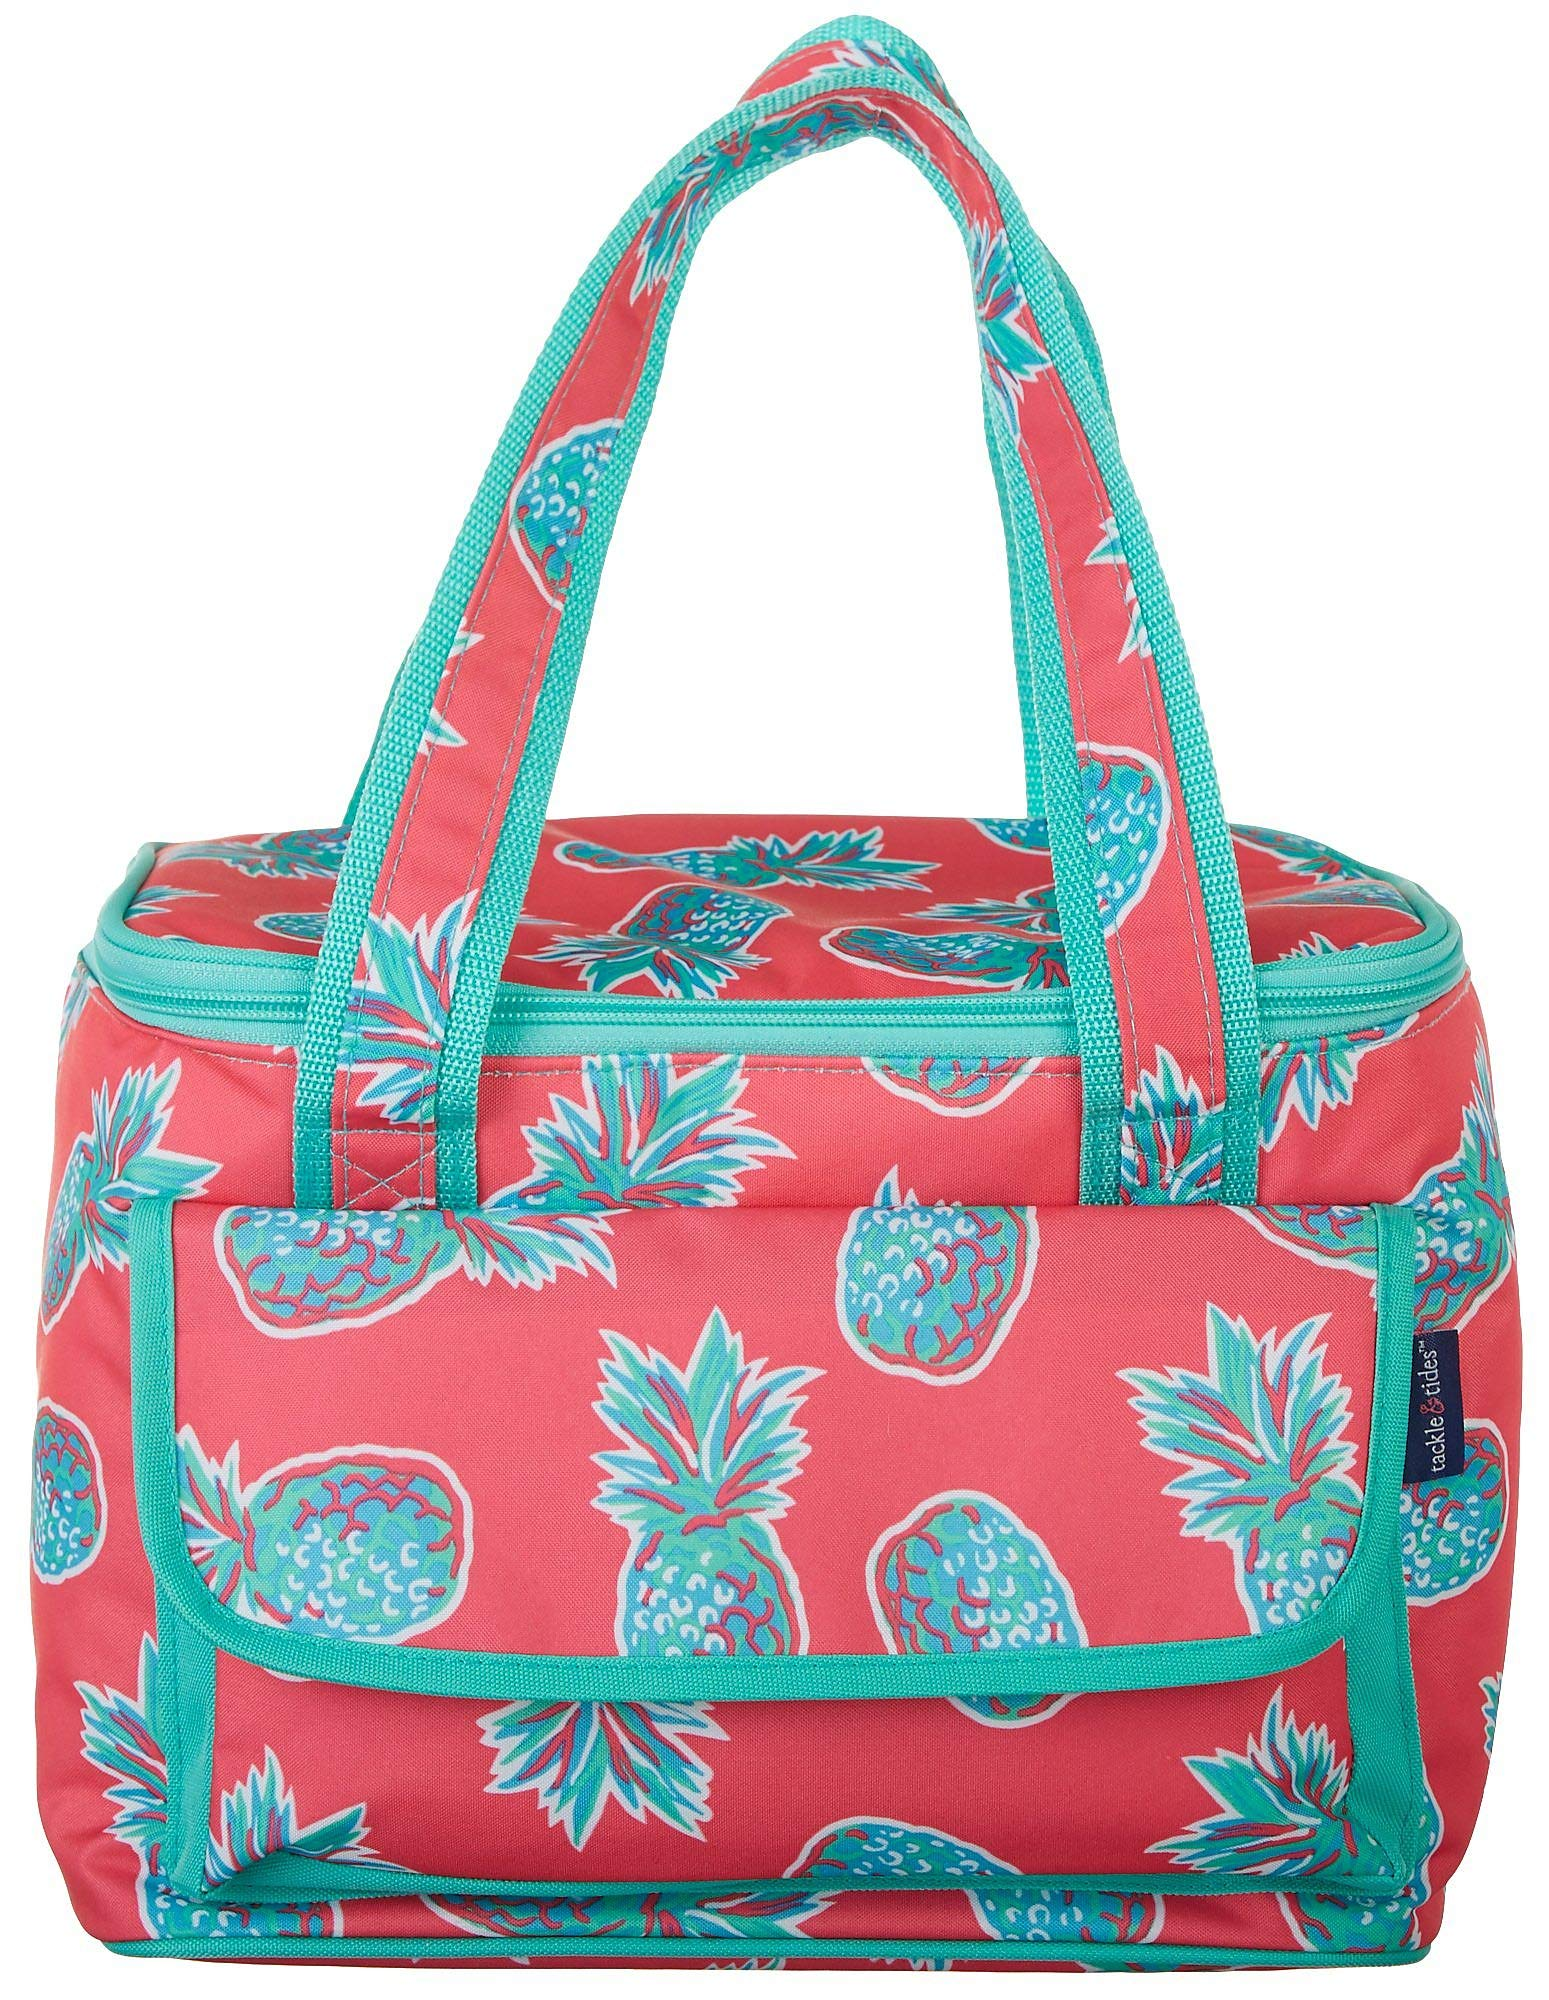 Tackle & Tides Pineapple 16 Can Cooler Tote One Size Aqua Blue//Pink